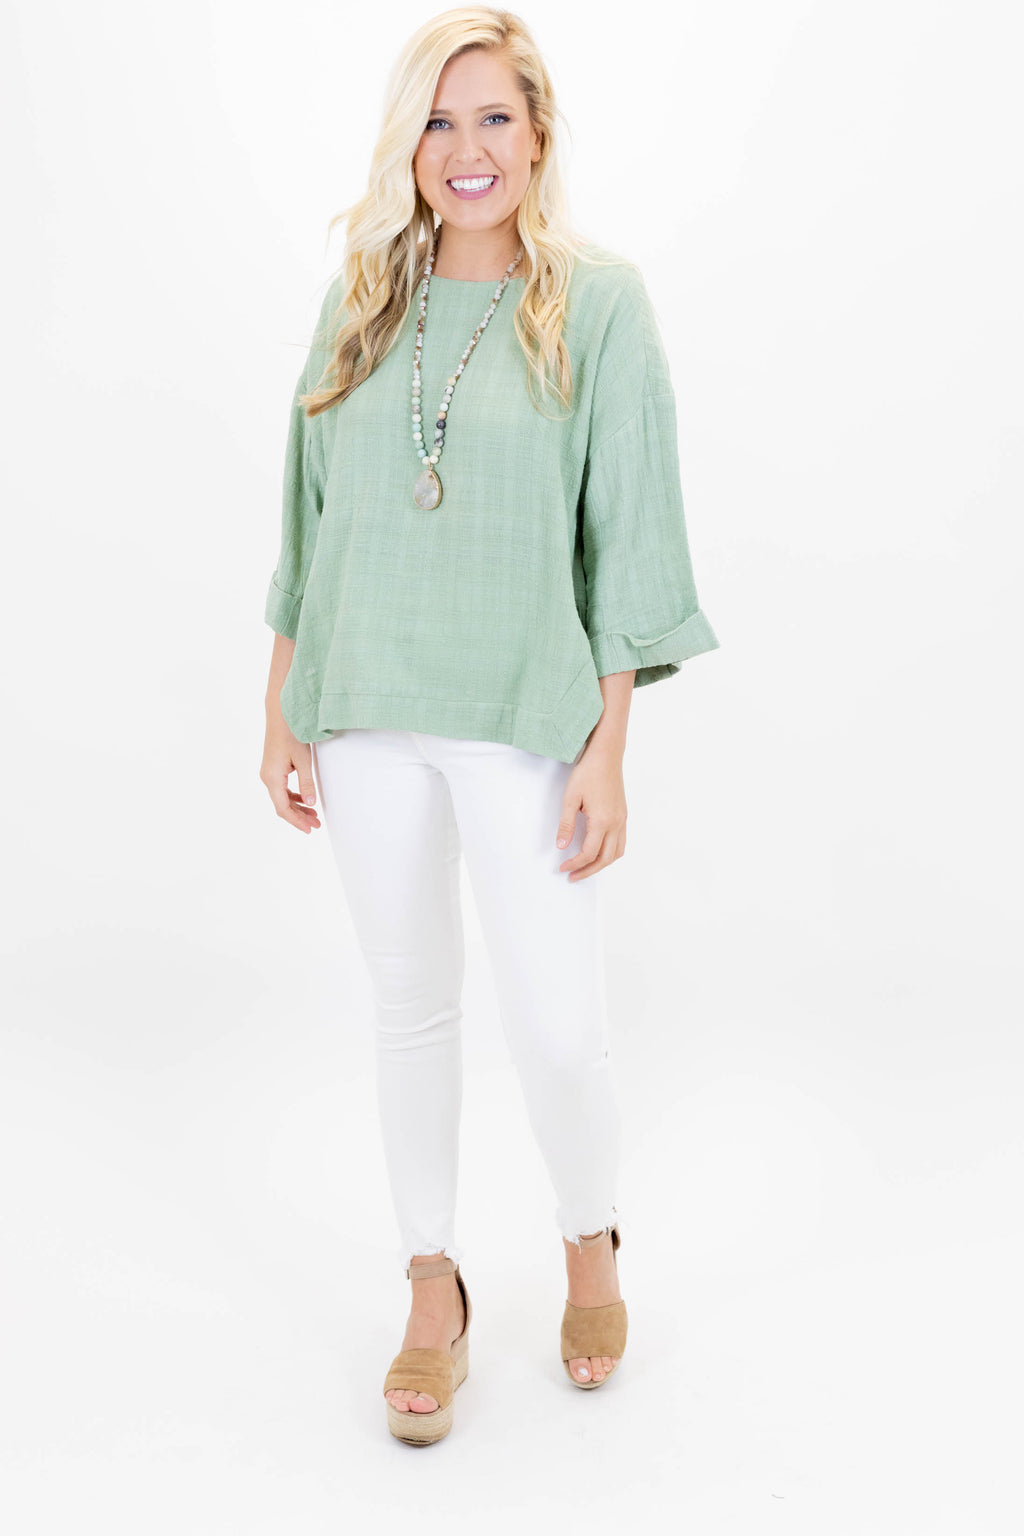 Slightly Striped Sage Top with 3/4 Length Sleeve and Cuffed Sleeve with Side Slit Detail